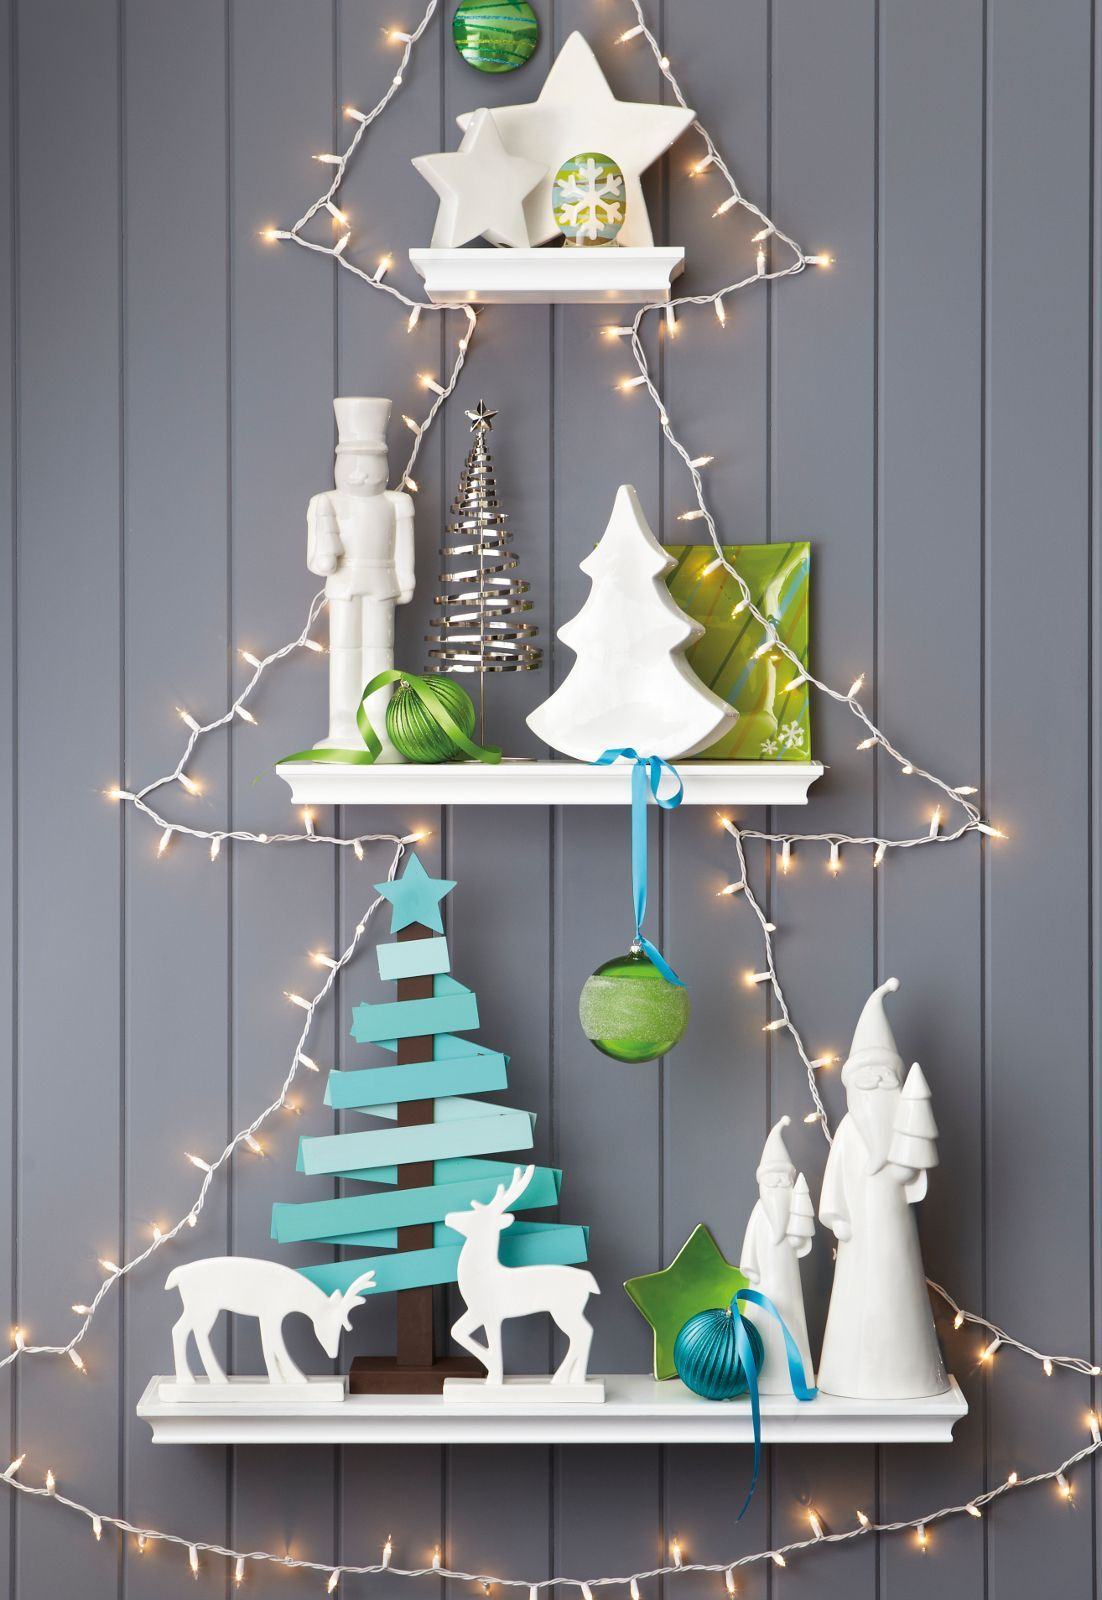 Holiday Suppliers Offer A Sneak Peek At Christmas 2014 Trends - Today's Garden Center